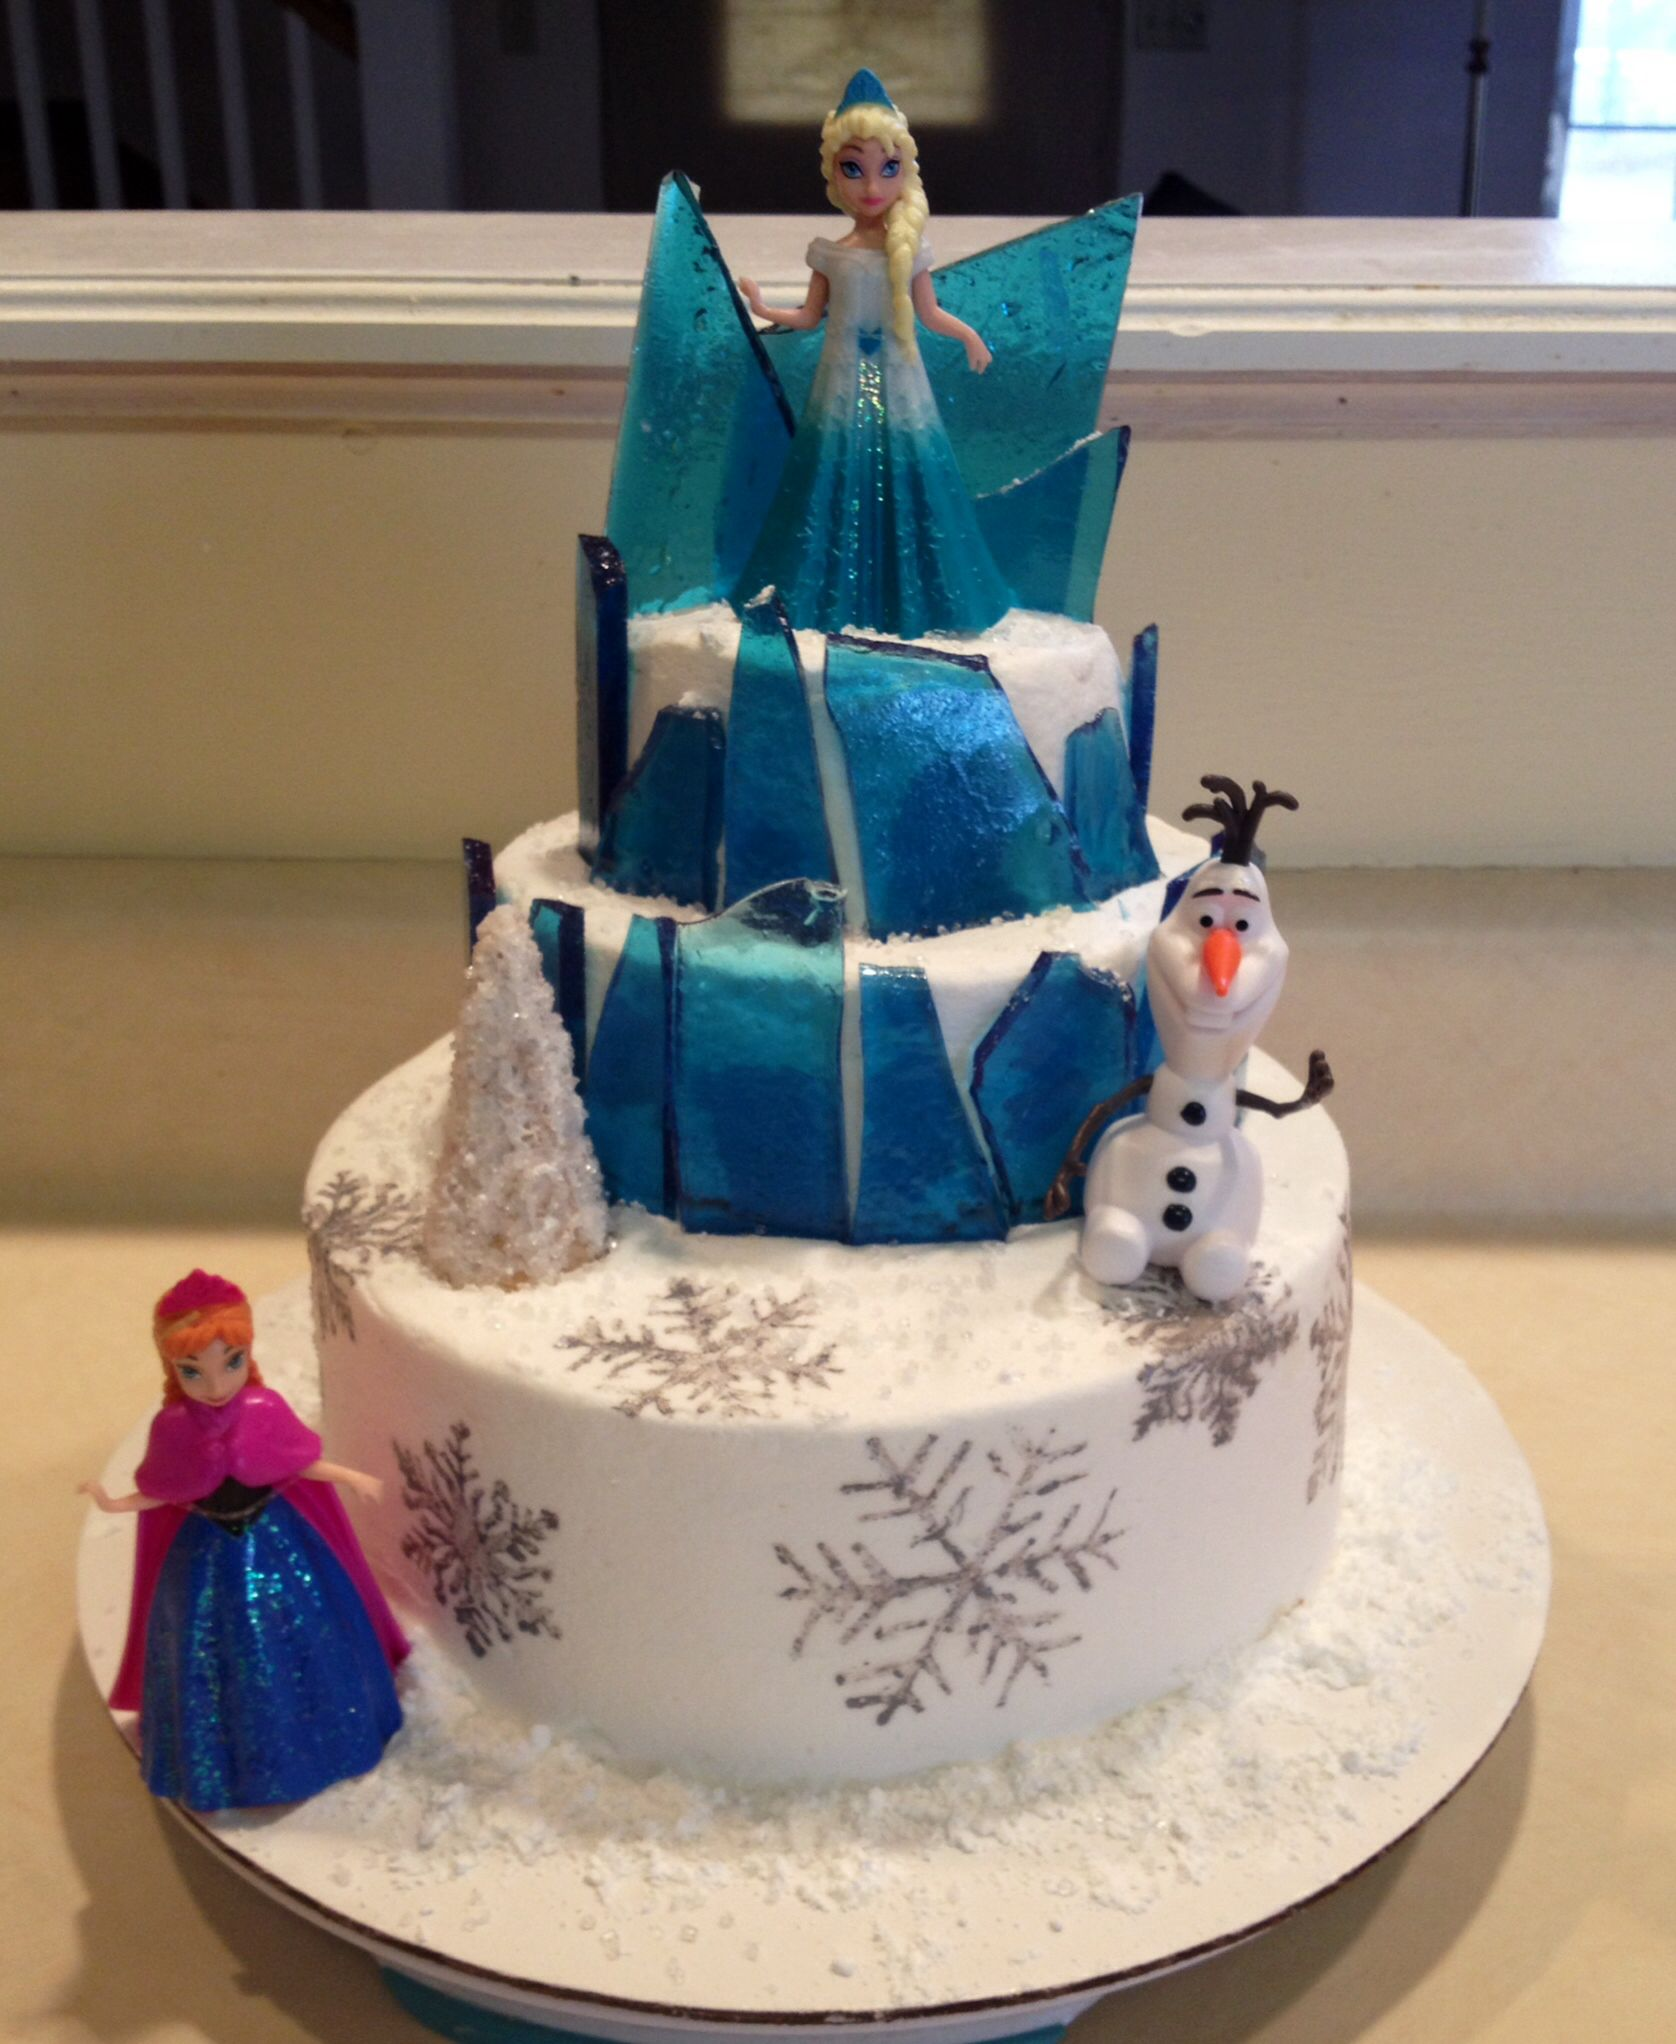 Frozen cake (With images) | Birthday cake kids, Frozen ...